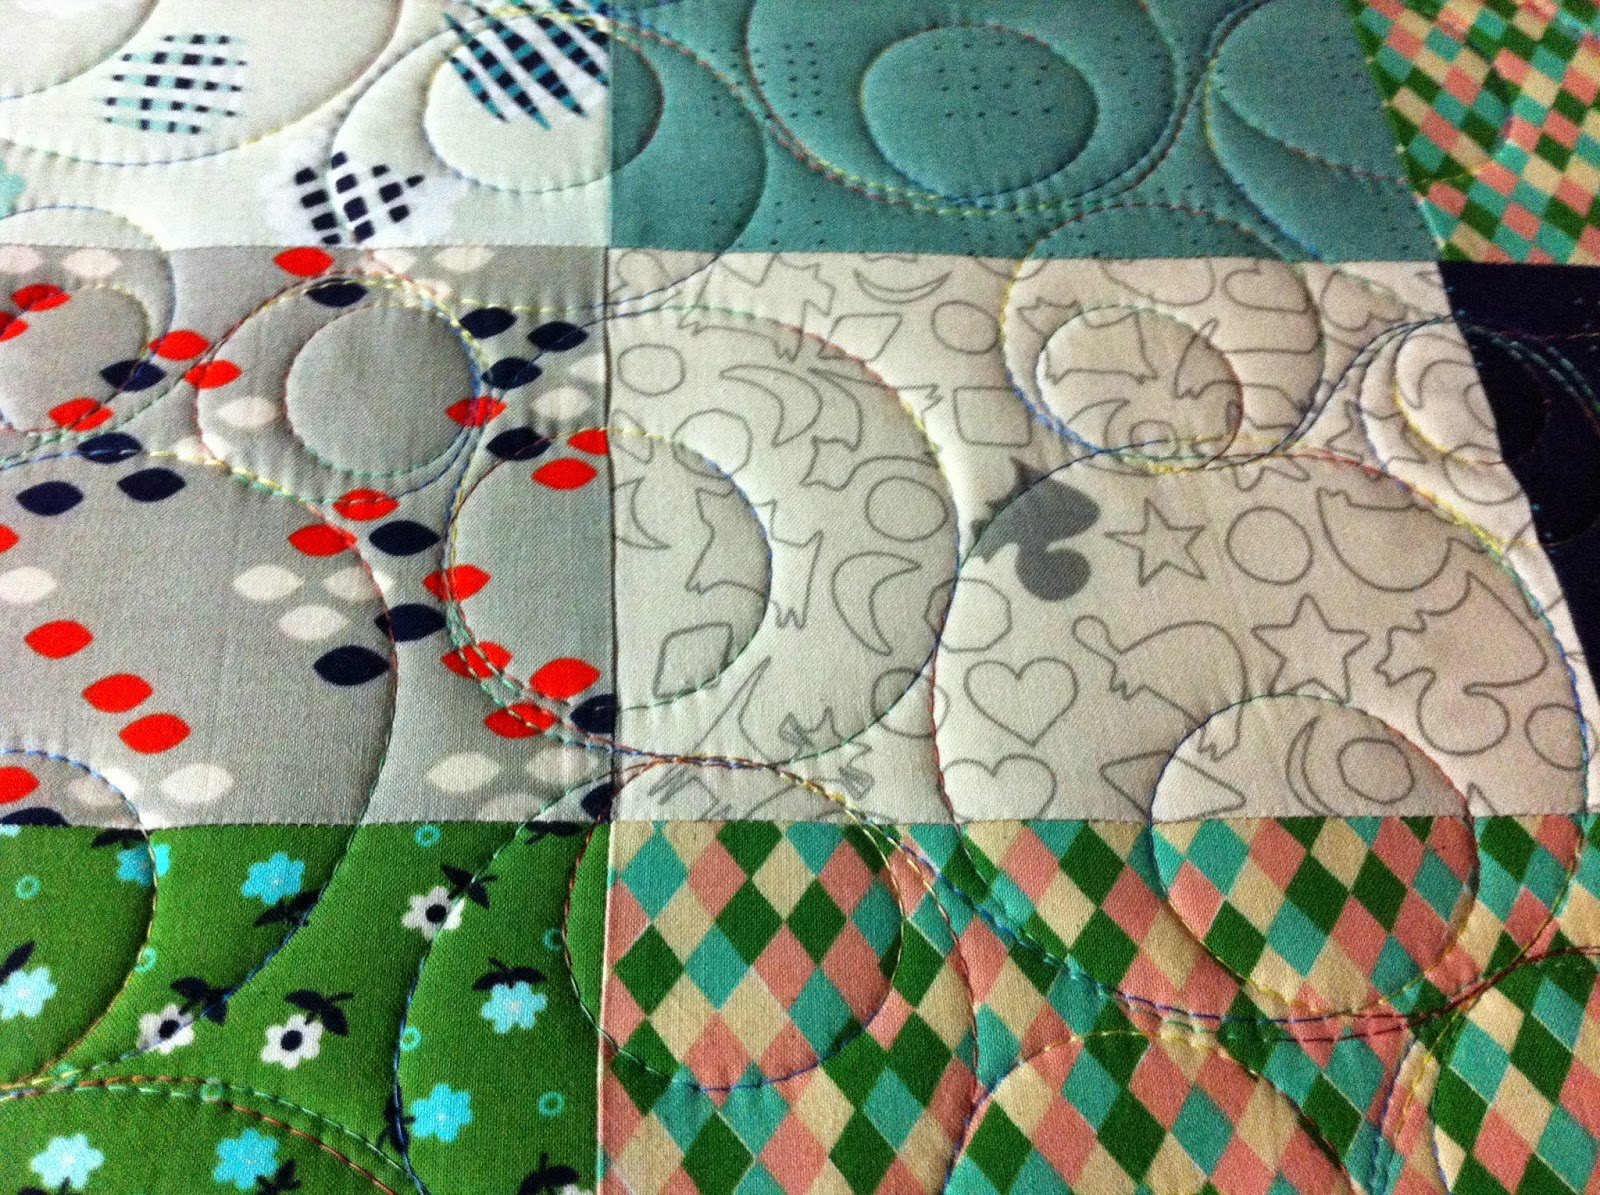 Linda's Quiltmania: January 2015 : easiest quilt ever - Adamdwight.com